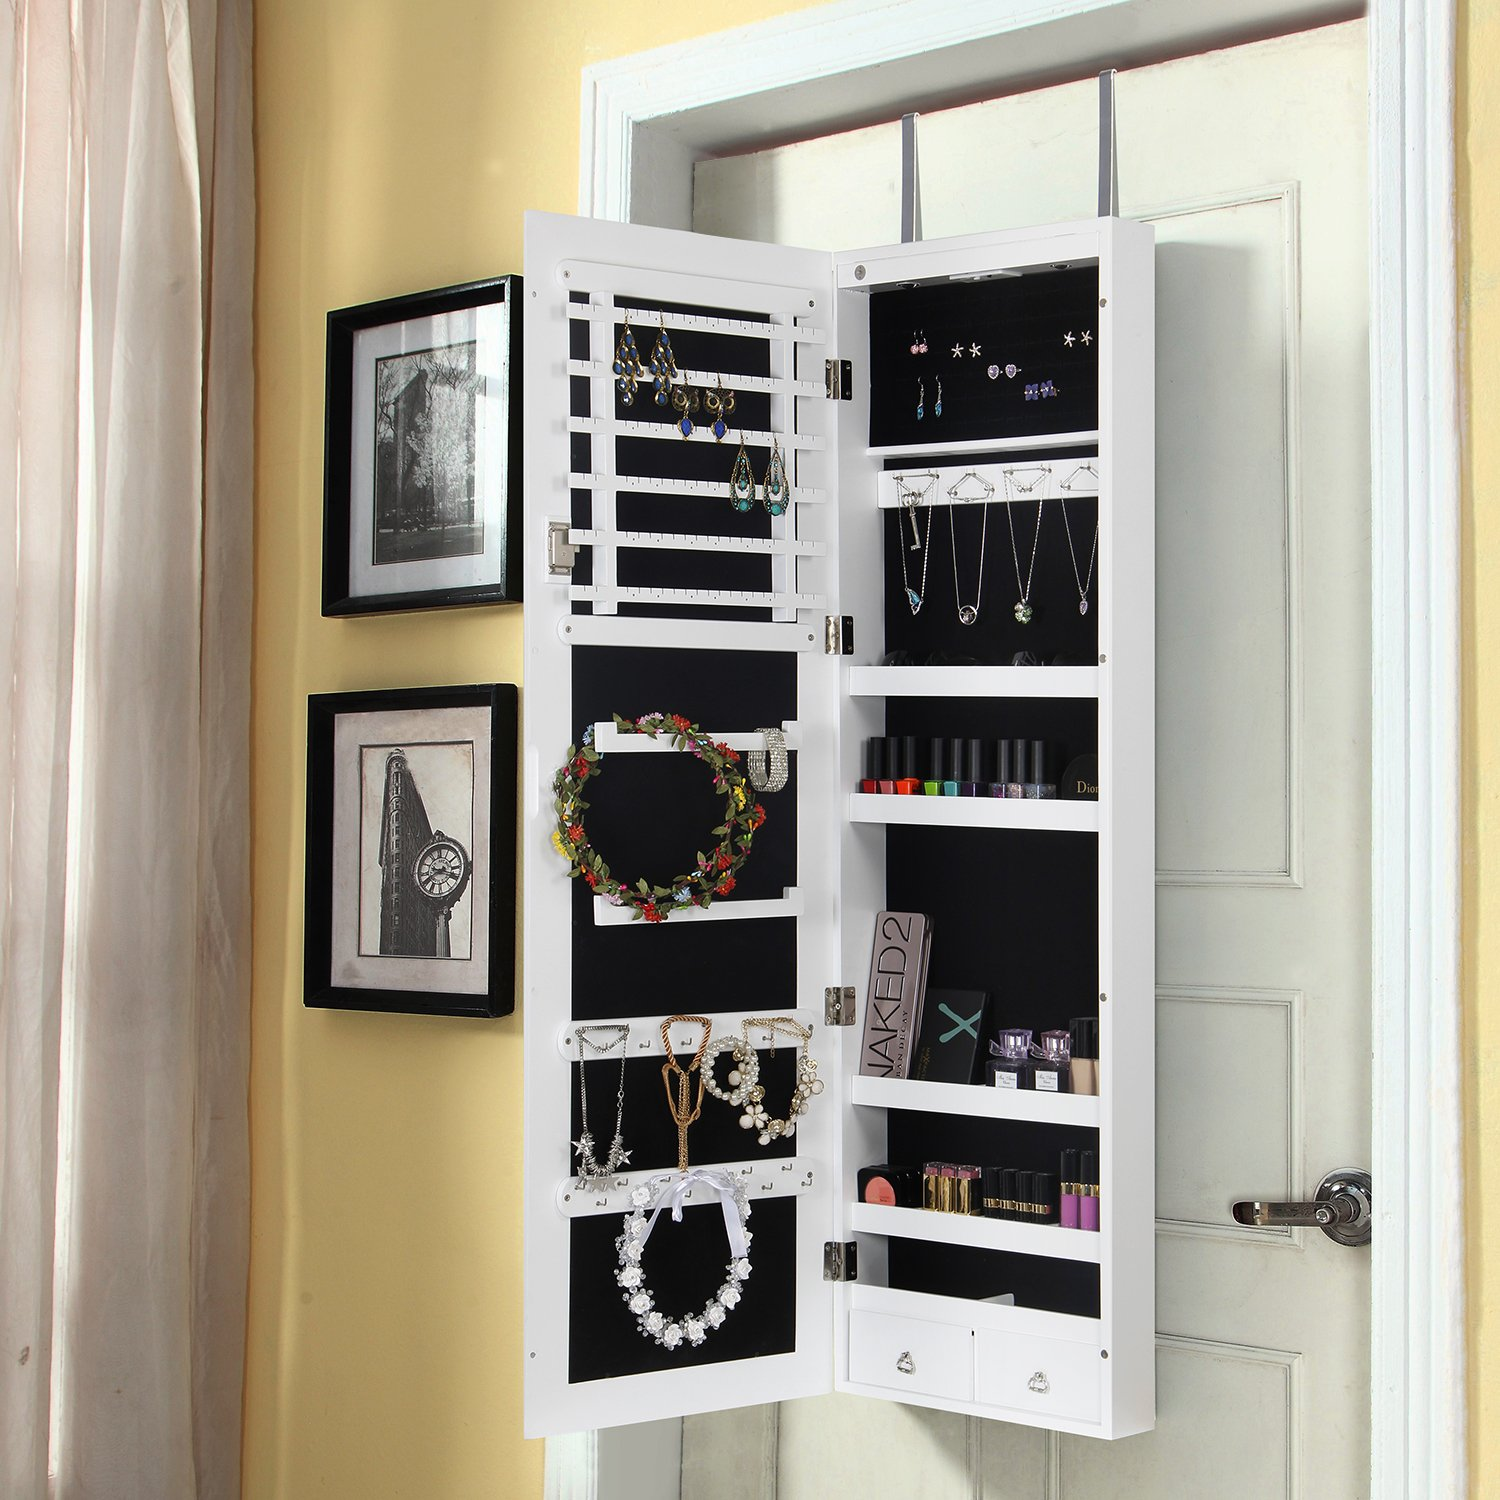 Amazoncom Lifewit Lockable Full Length Mirrored Jewelry Cabinet